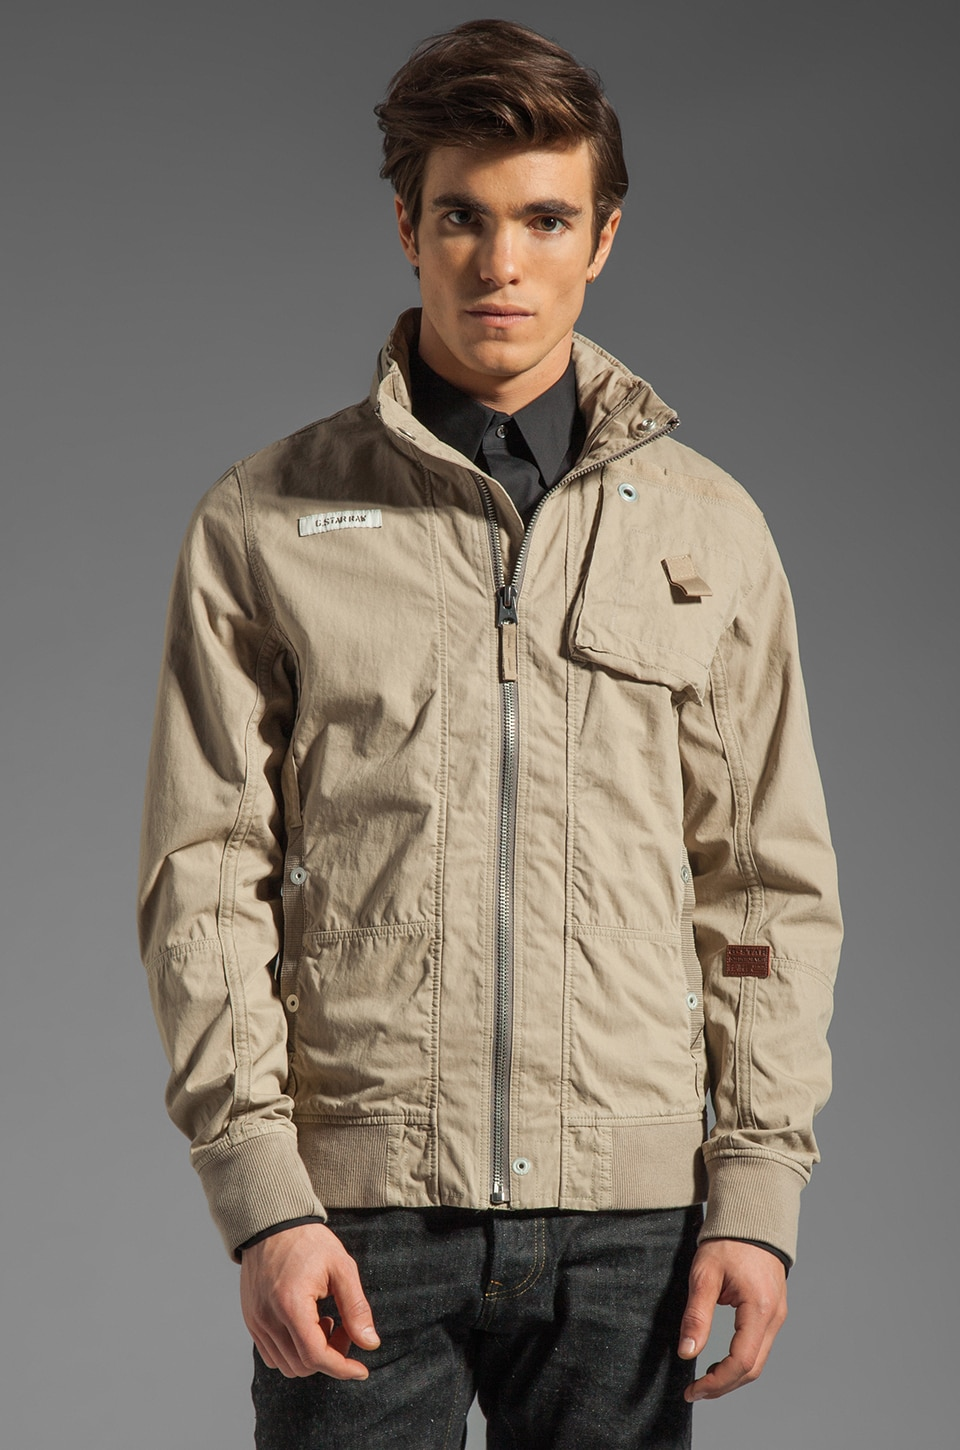 G-Star RCO Lockhart Bomber Jacket in Grege